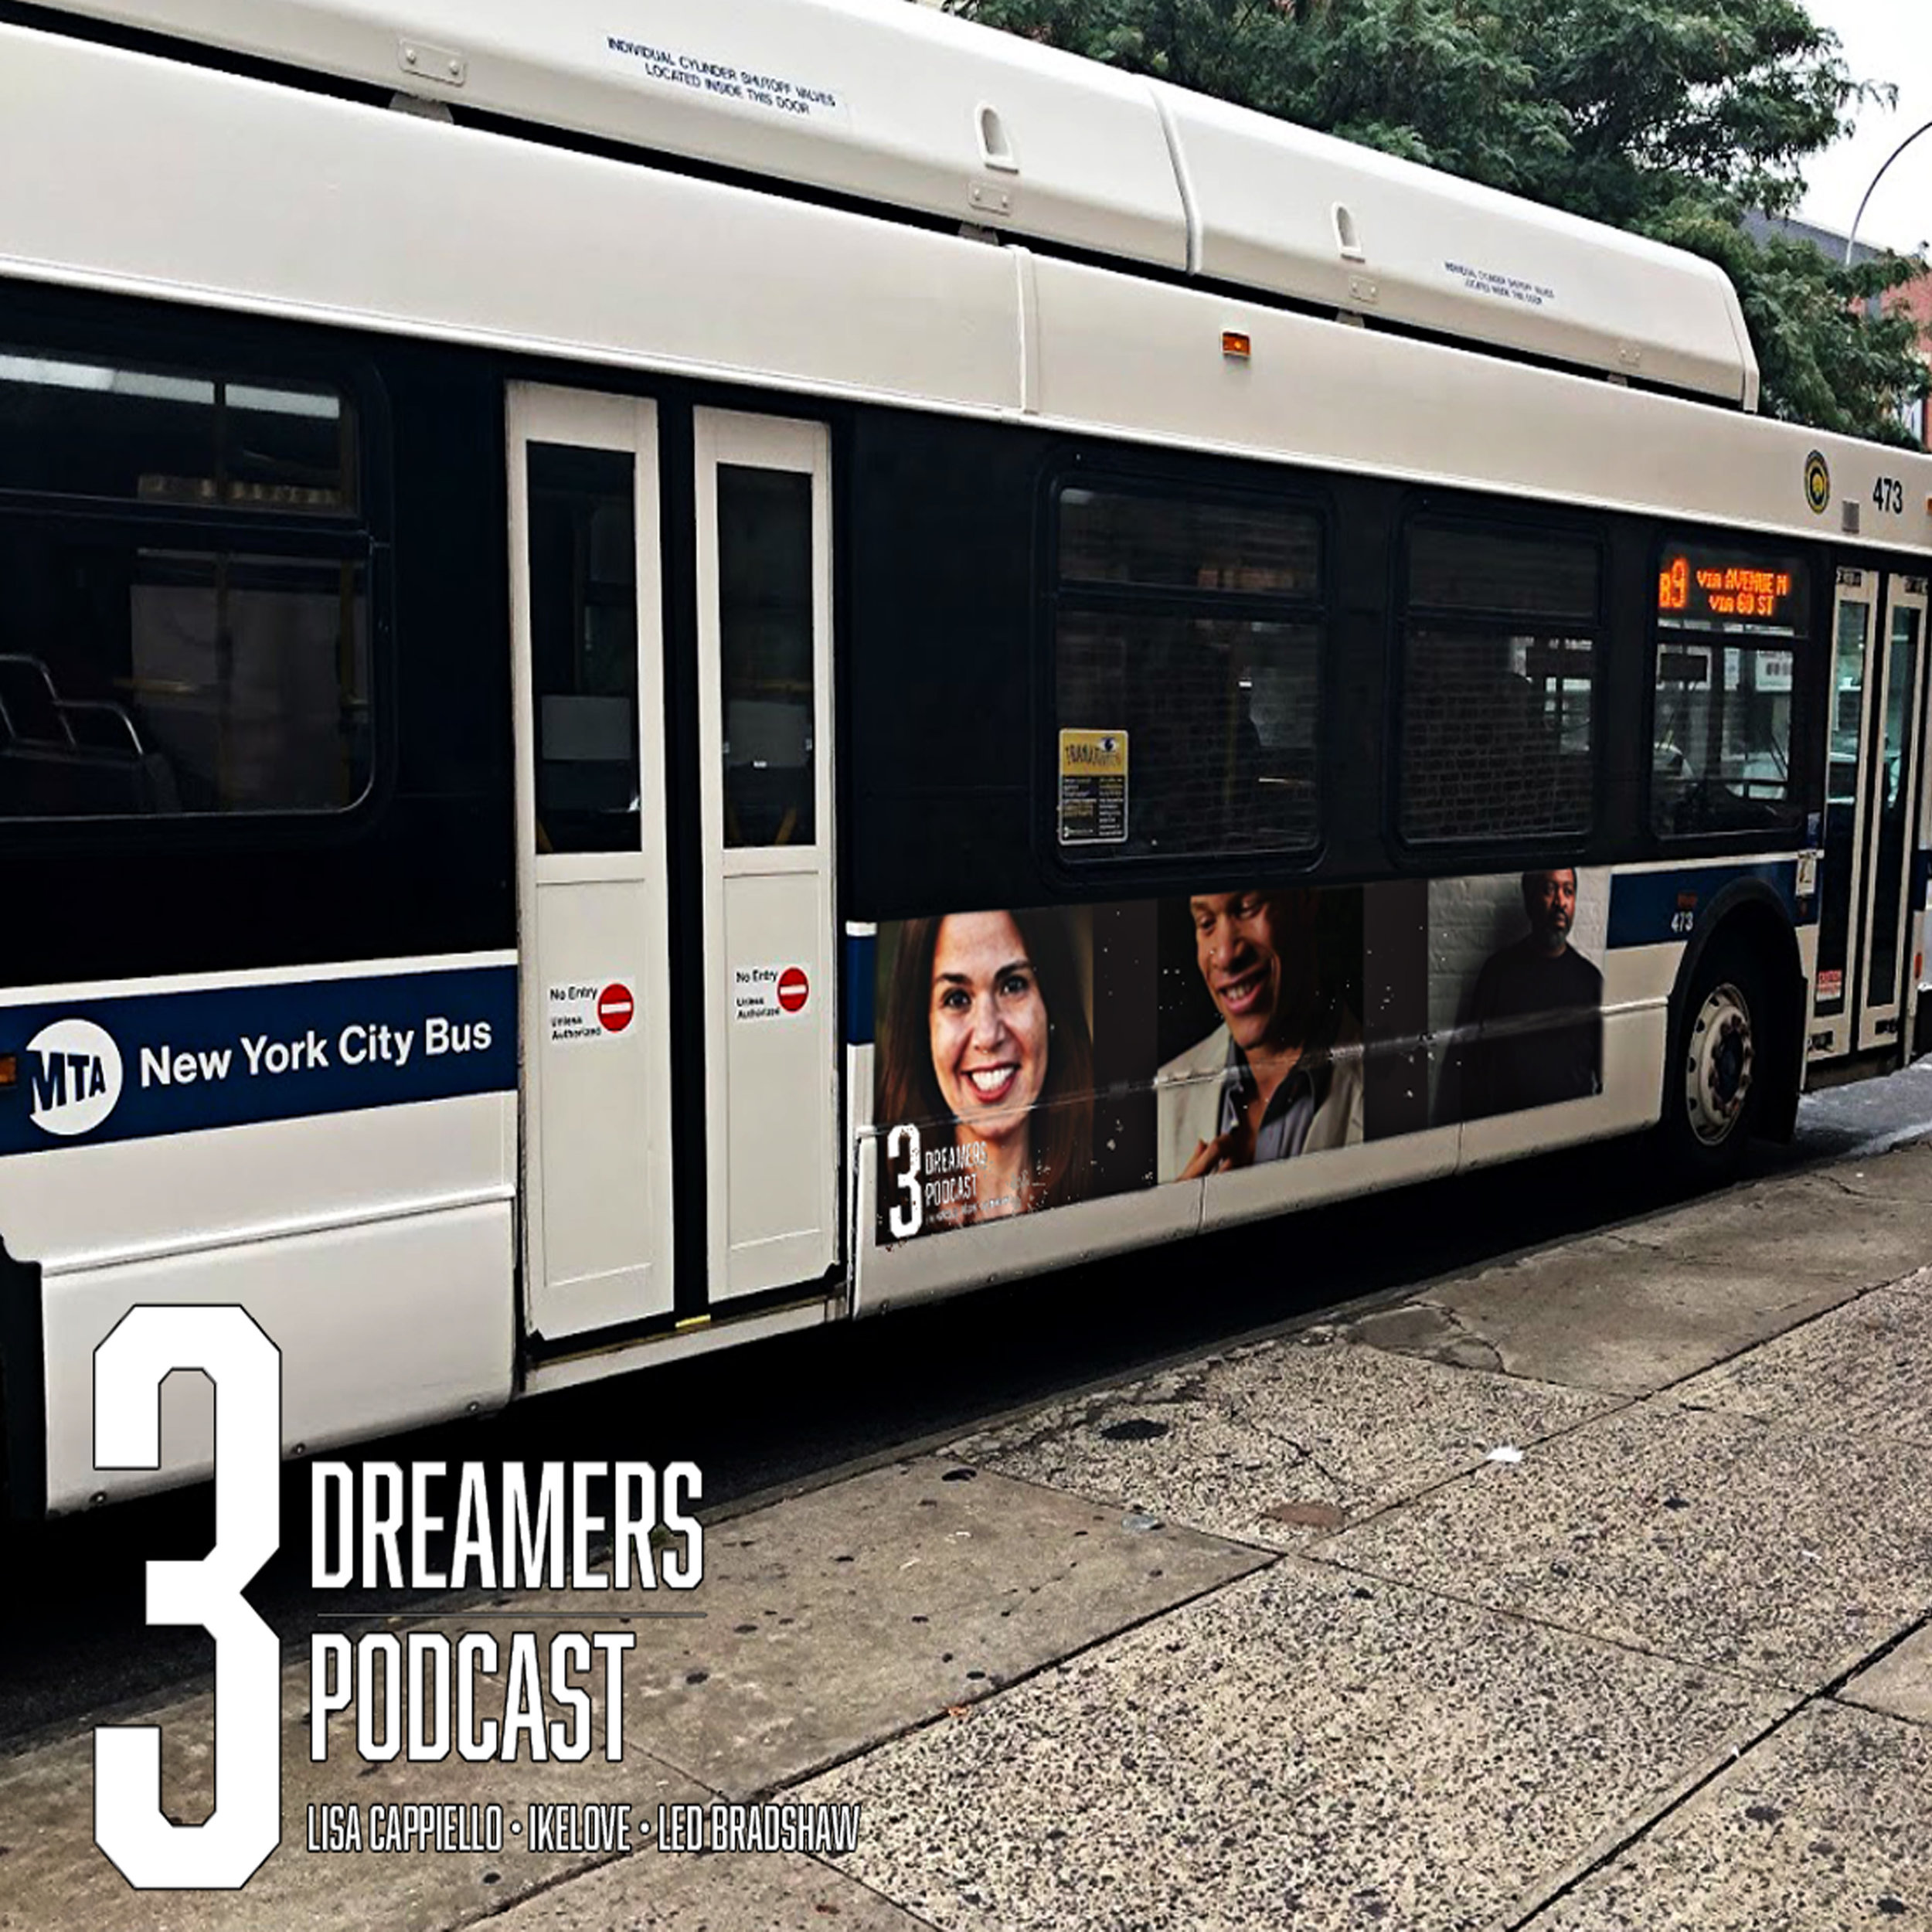 City_Bus_Artwork_3_Dreamers.jpg